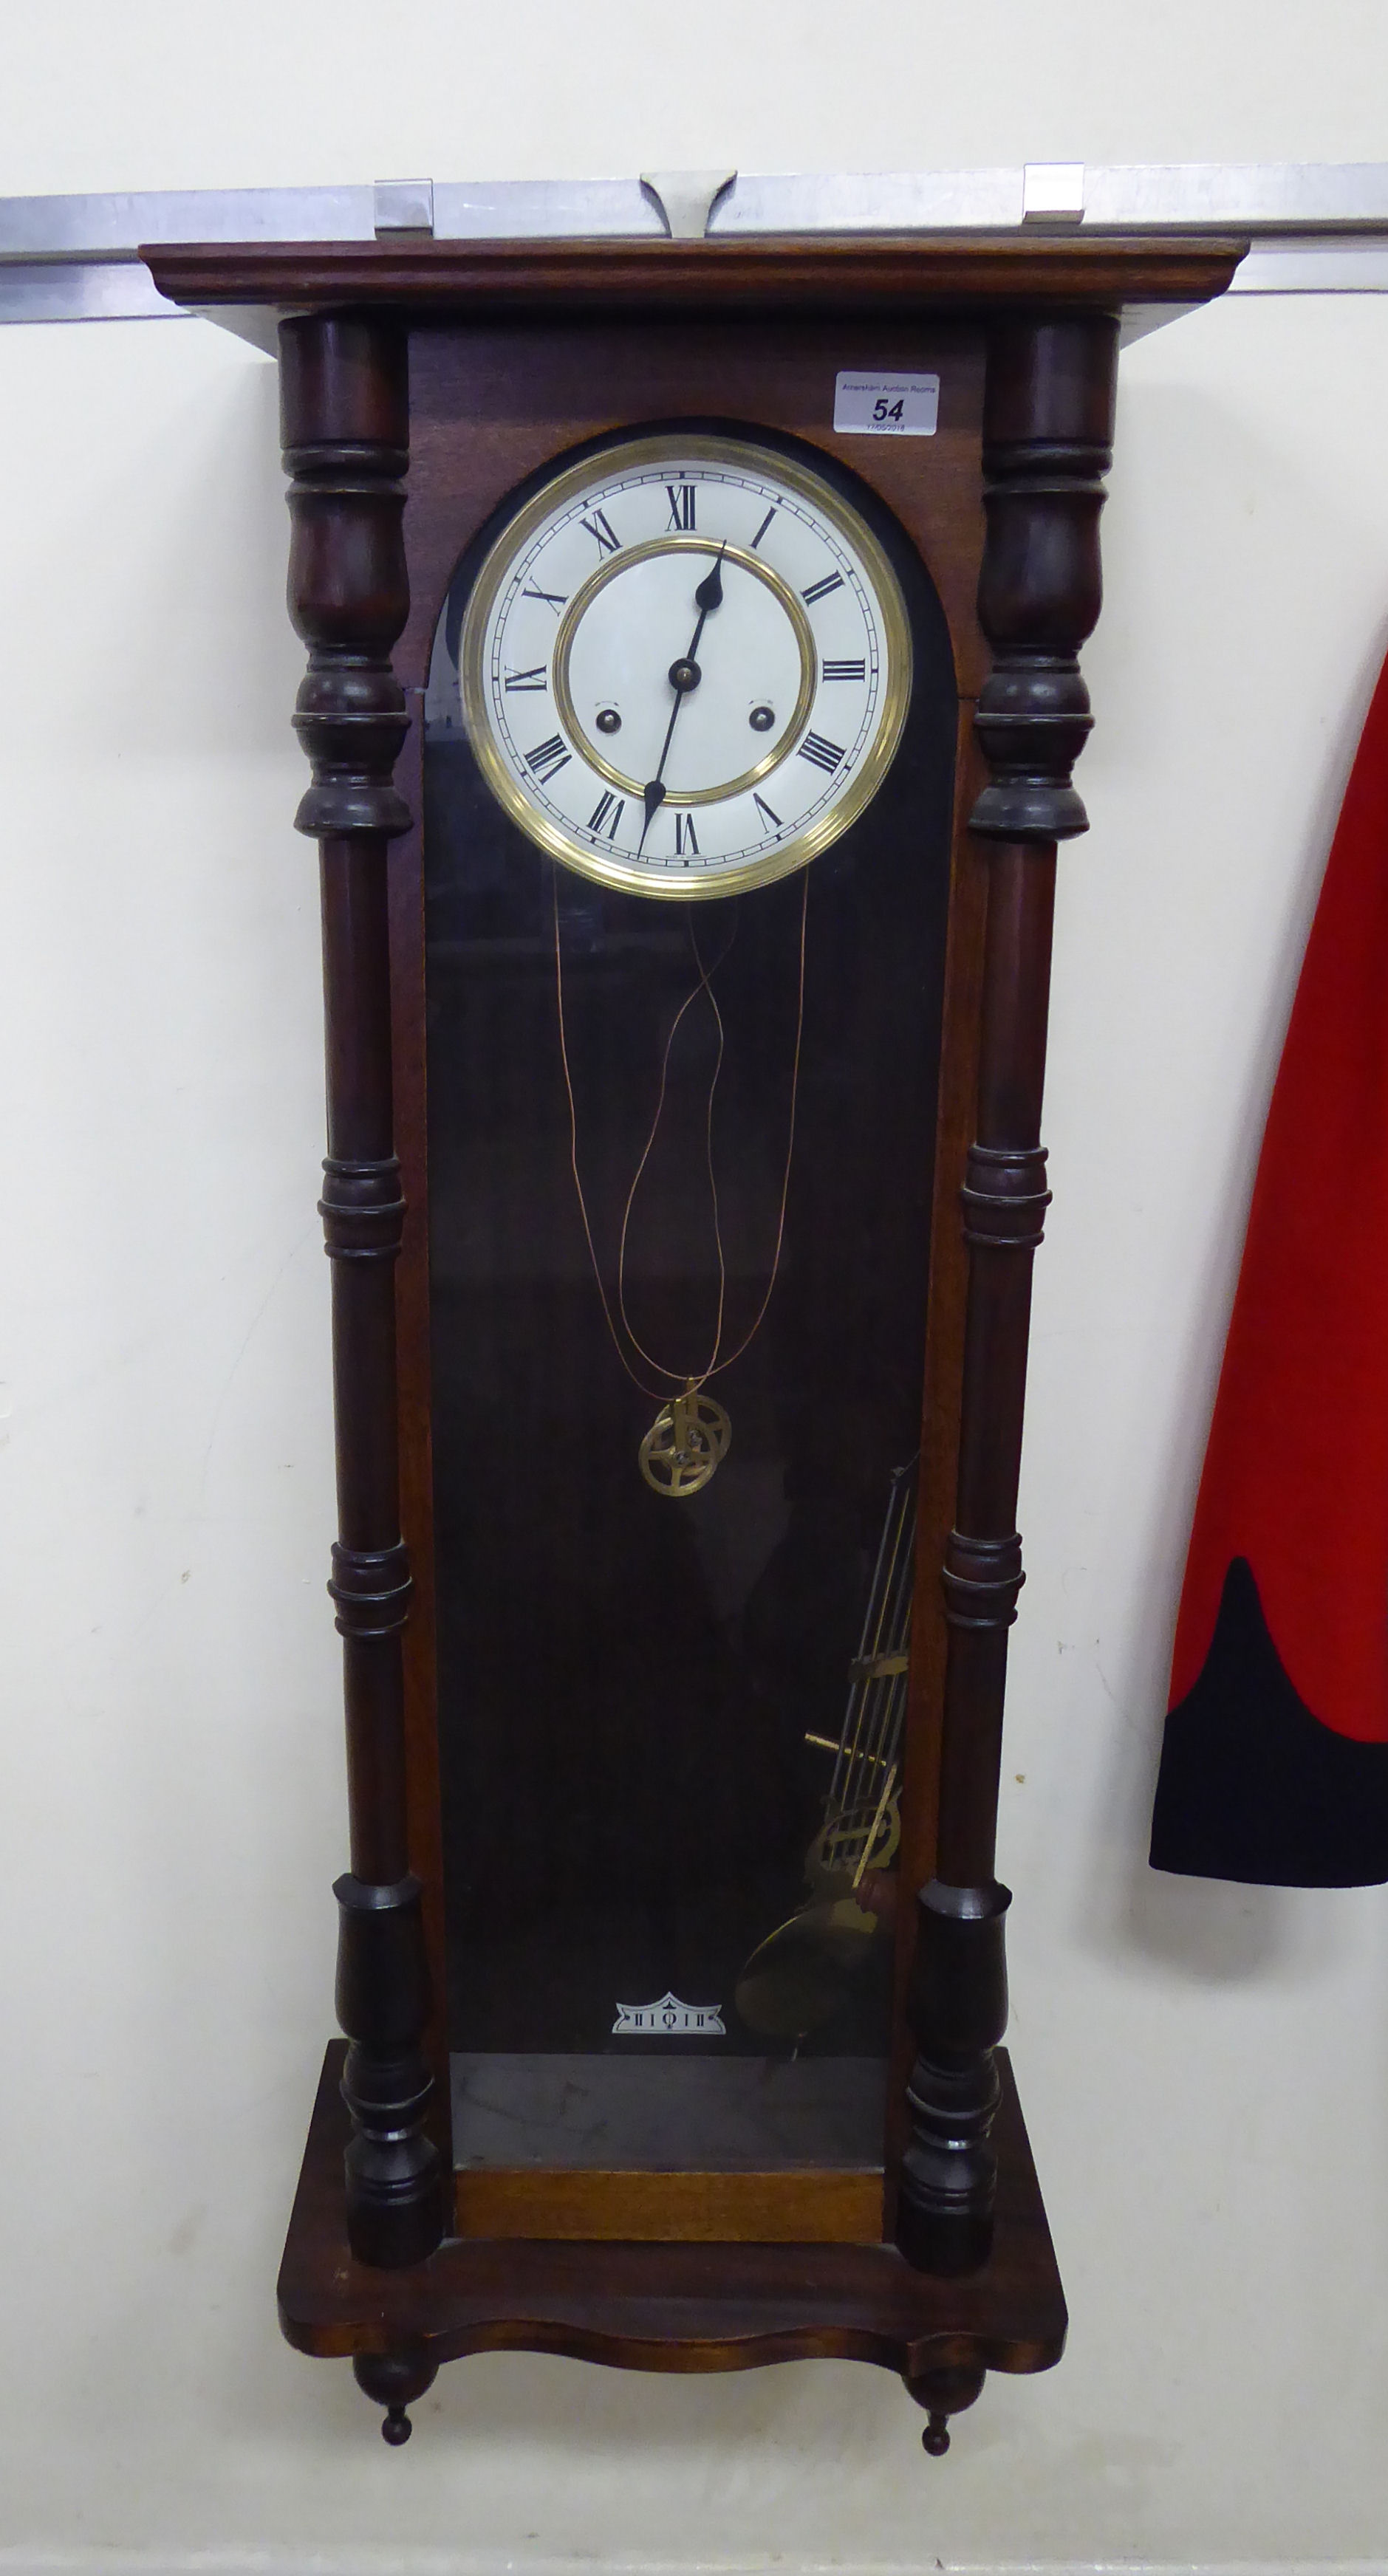 Lot 54 - An early 20thC glazed mahogany cased Vienna wall clock with turned pilasters and drop finials;